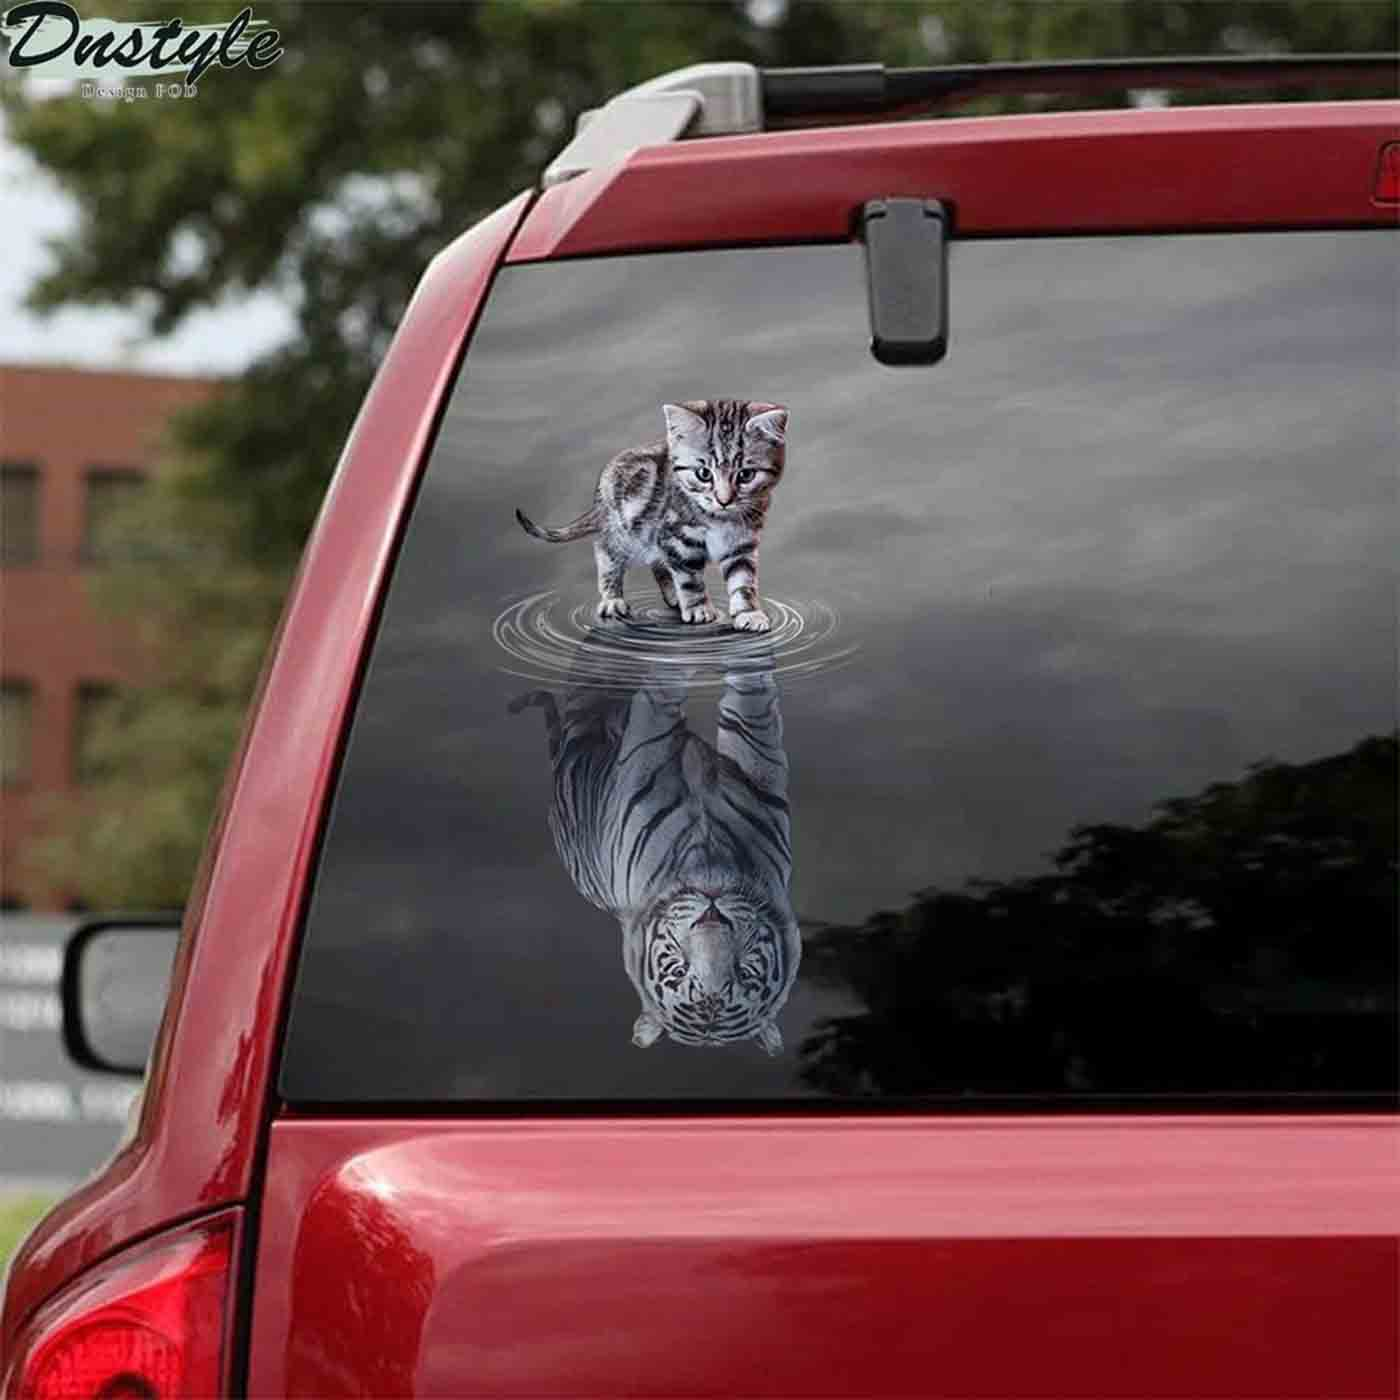 Cats tigers animal cute car decal sticker 2